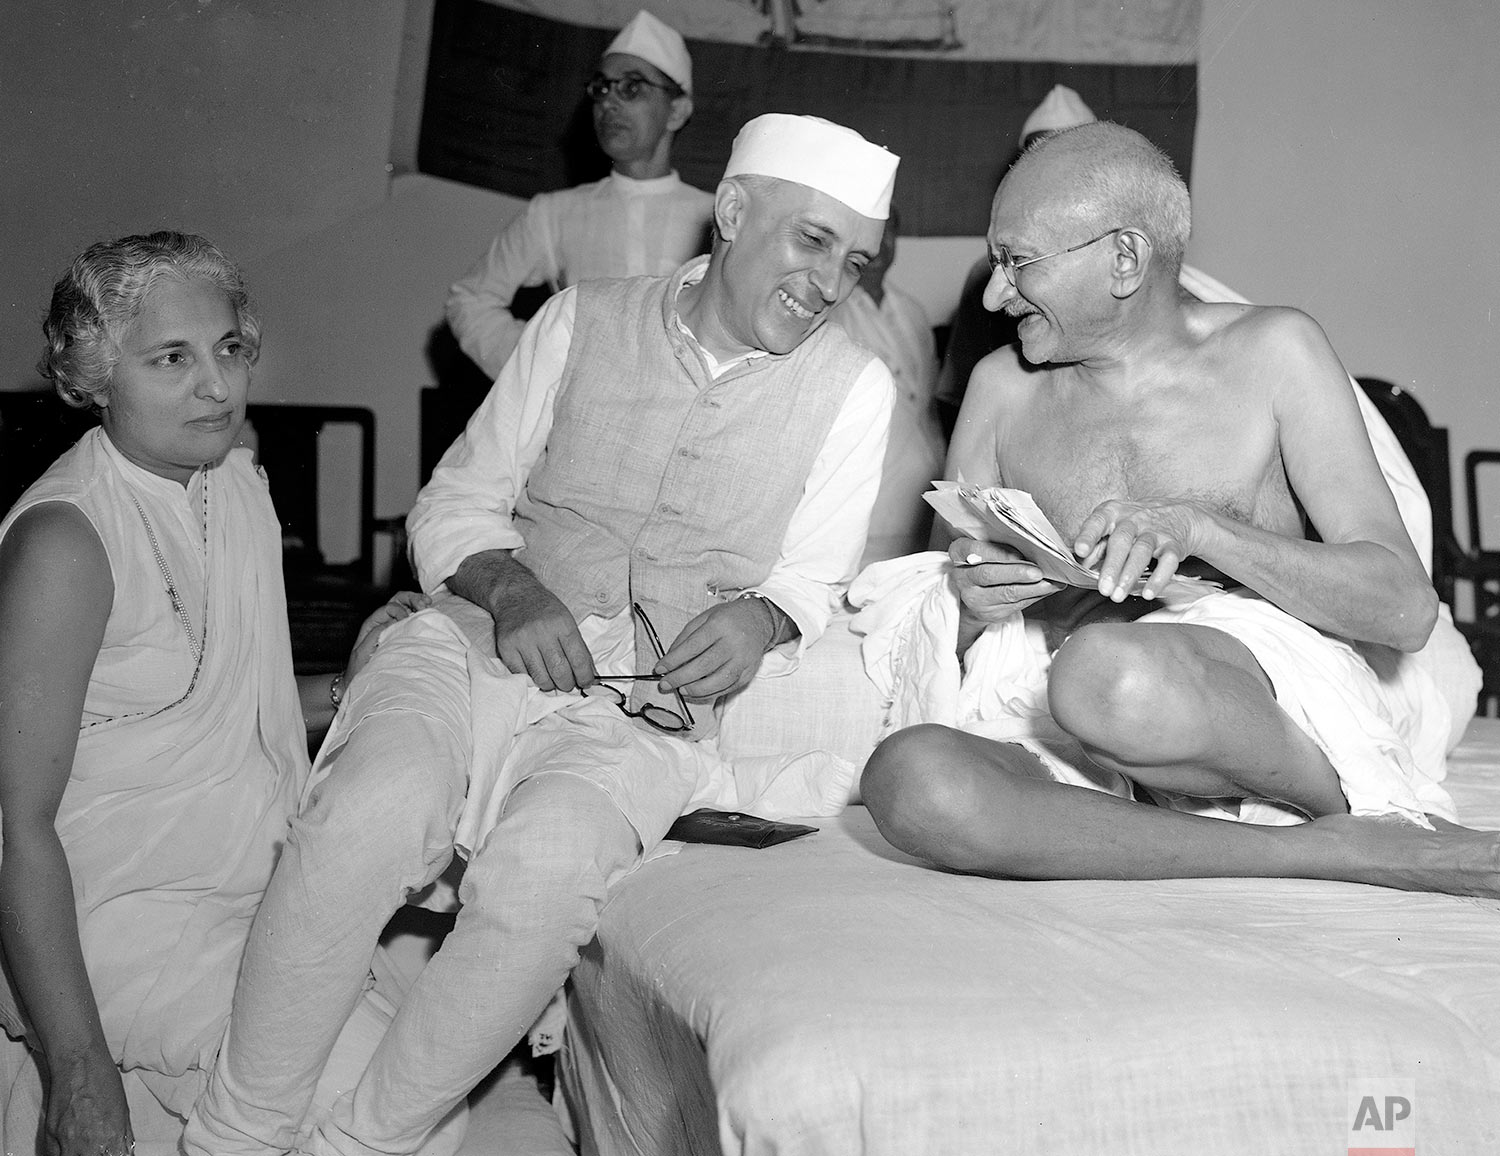 In this July 6, 1946, photo, a bespectacled Mohandas Gandhi, the Mahatma, who eventually led India to its independence, laughs with the man who was to be the nation's first prime minister, Jawaharlal Nehru, at the All-India Congress committee meeting in Bombay, India. Atleft is Madam Vijaya Lakshmi Pandit.  (AP Photo/Max Desfor)